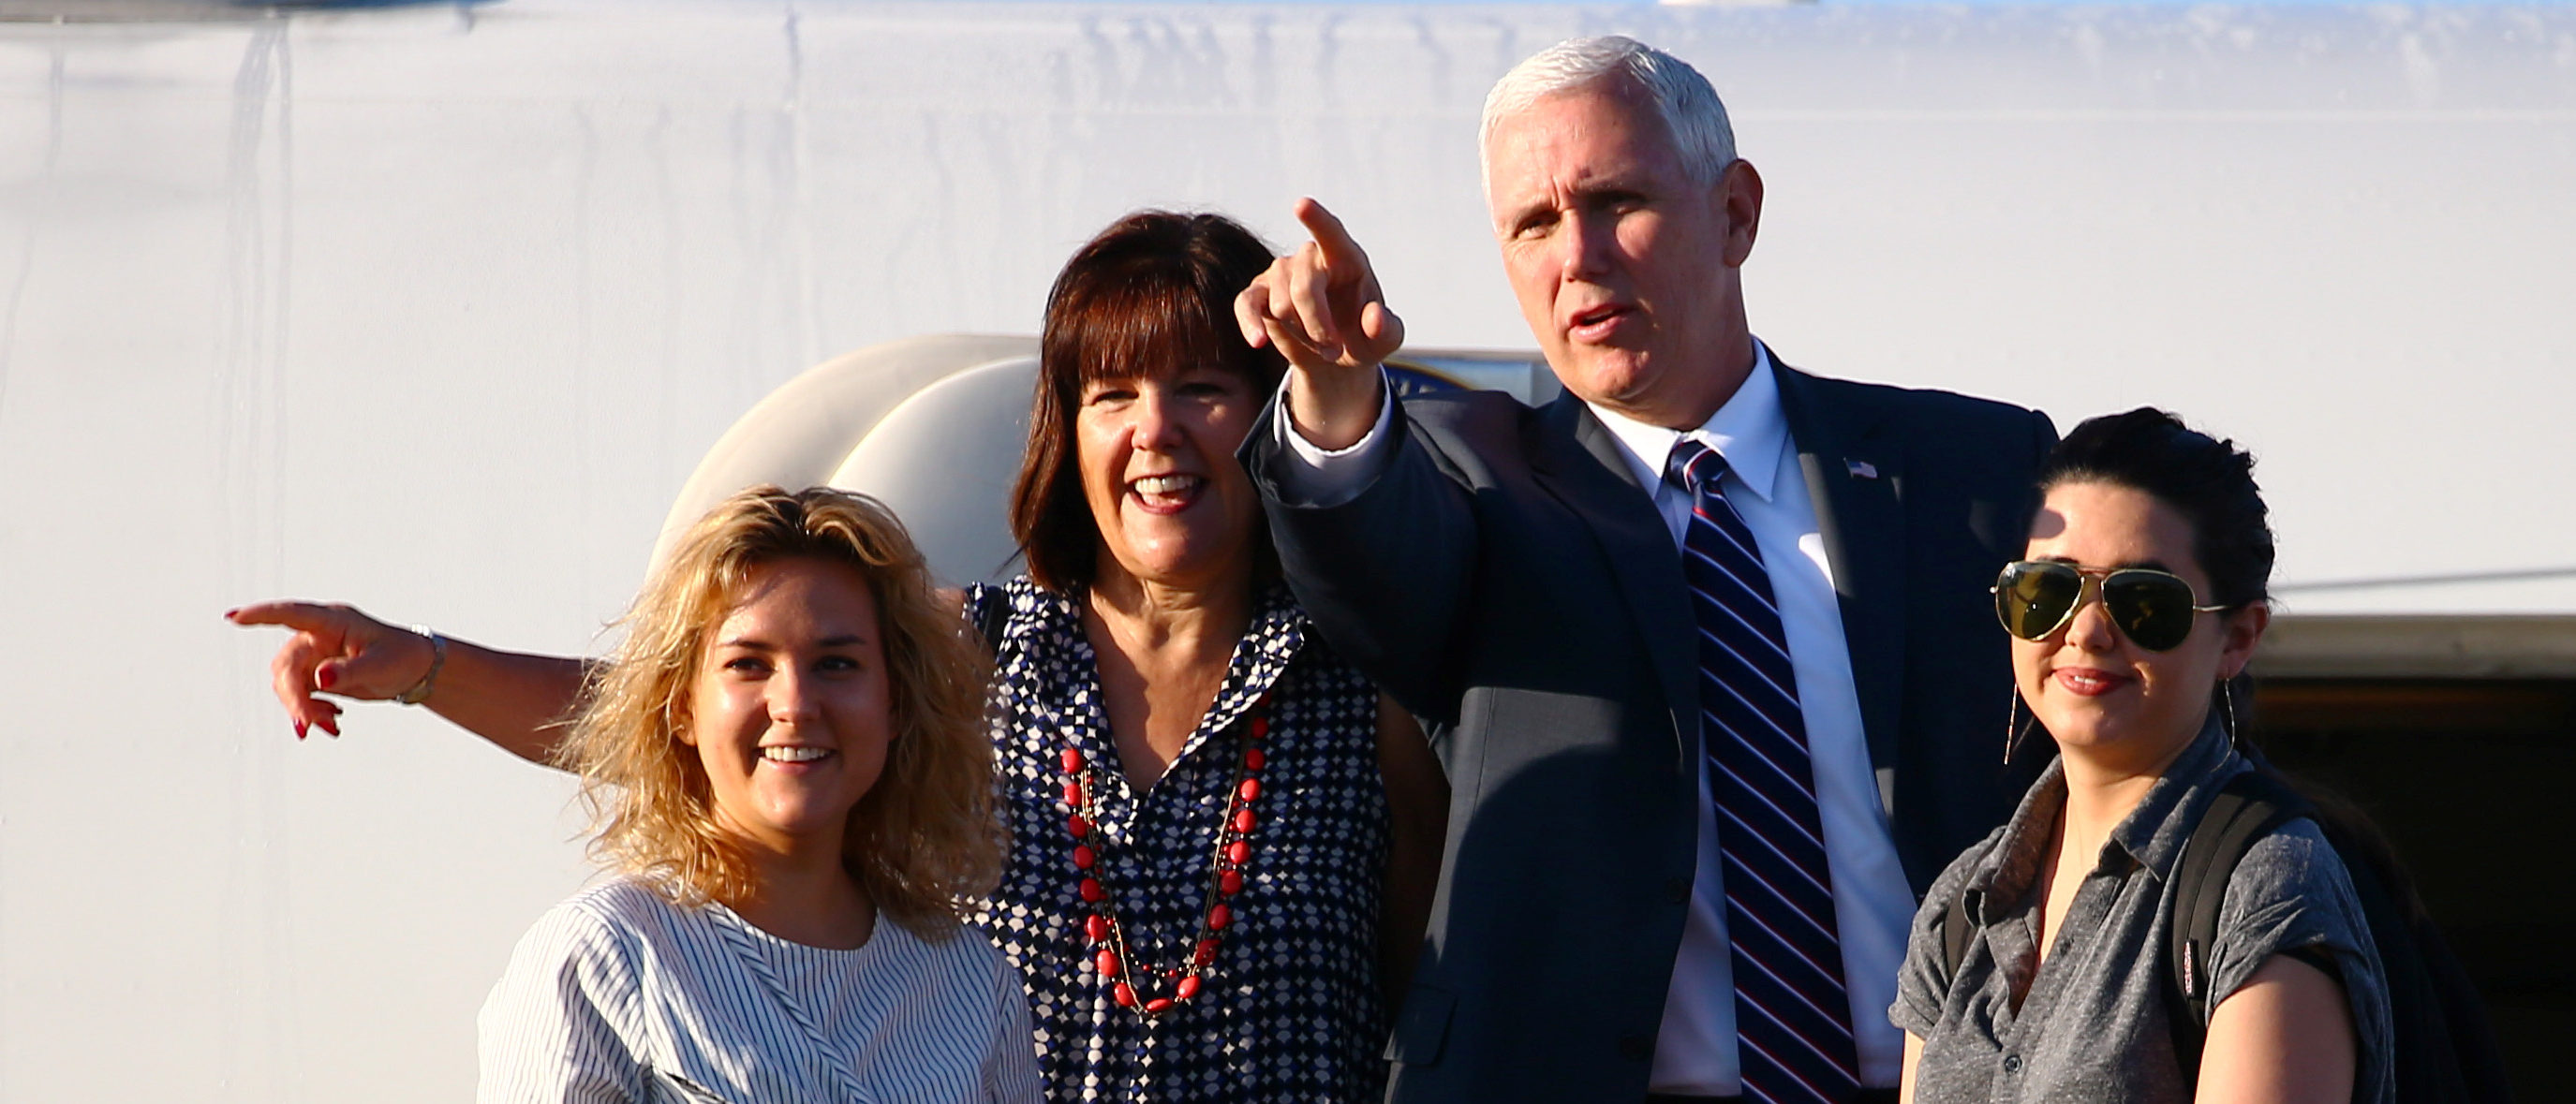 Pence family